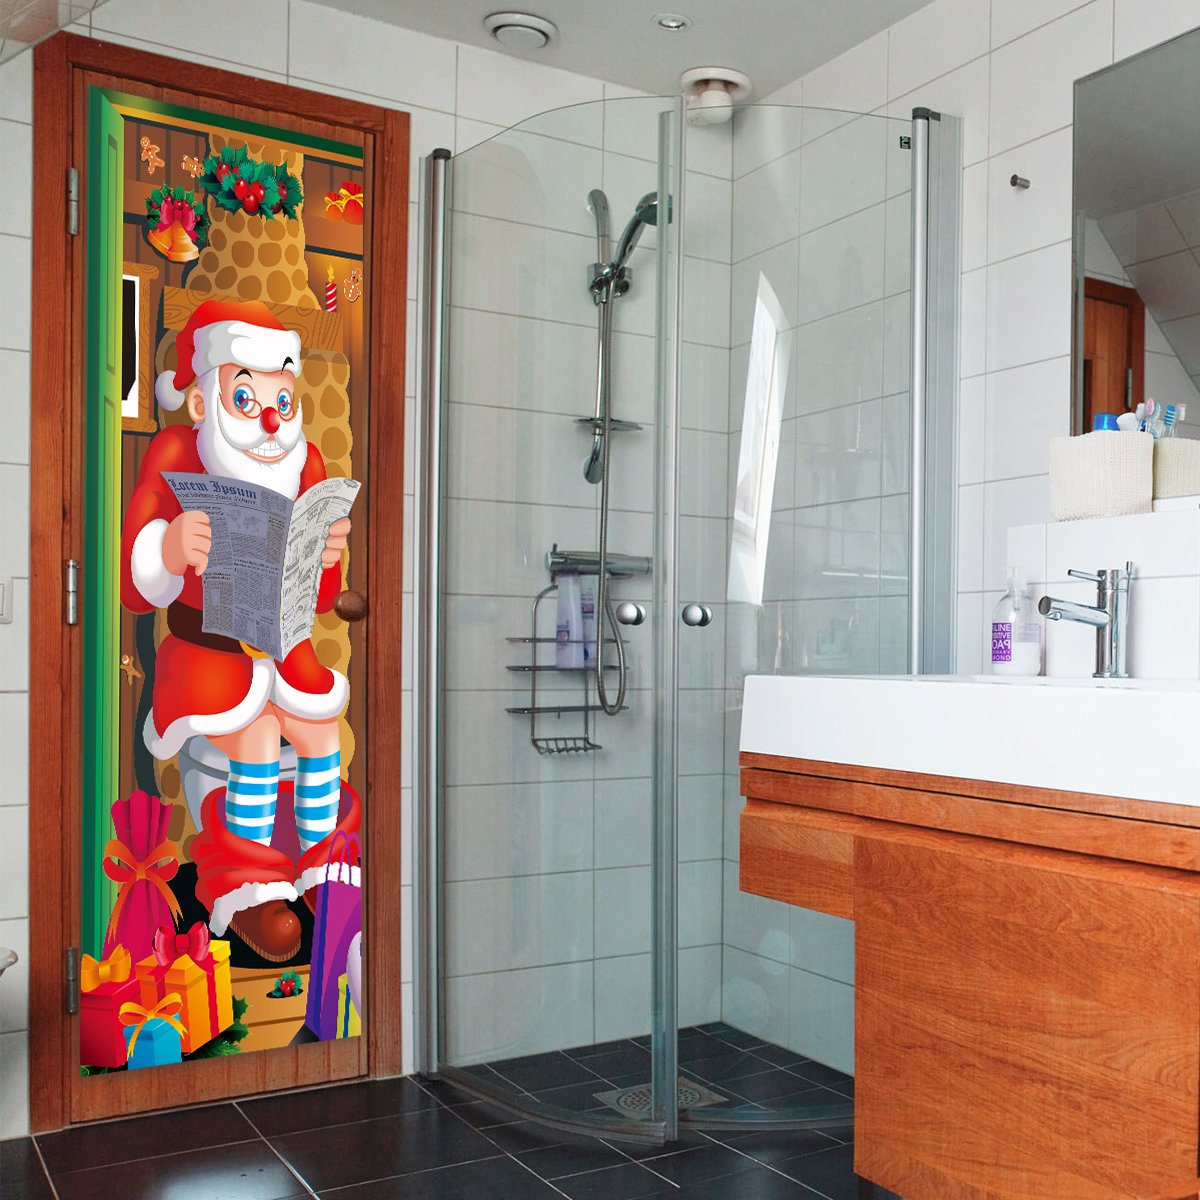 Unomor 2 Pack Christmas Door Covers Decoration Santa Claus Door Covers Poster for Xmas/Holiday/Party Home Decoration Ornament Front Door Bathroom Toilet, 31